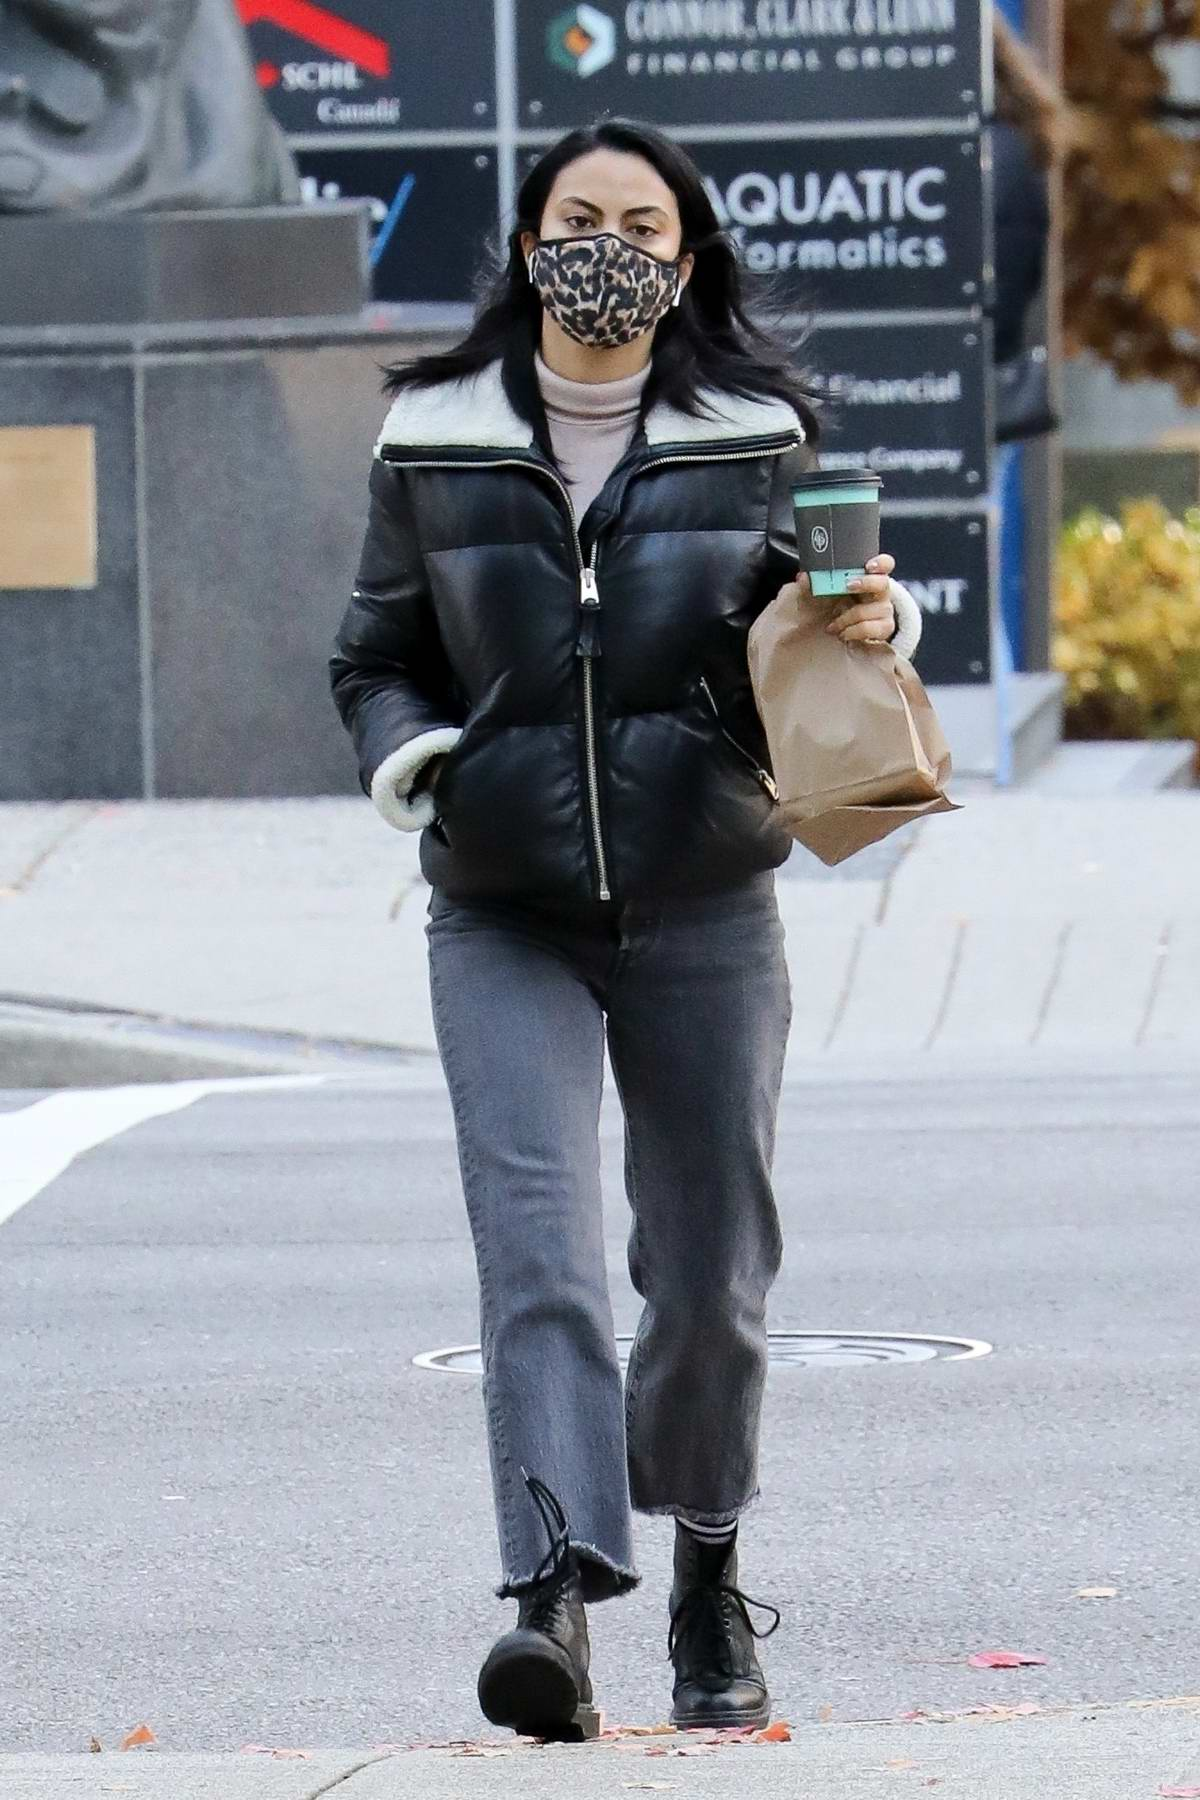 Camila Mendes grabs some coffee on a day off work in Vancouver, Canada